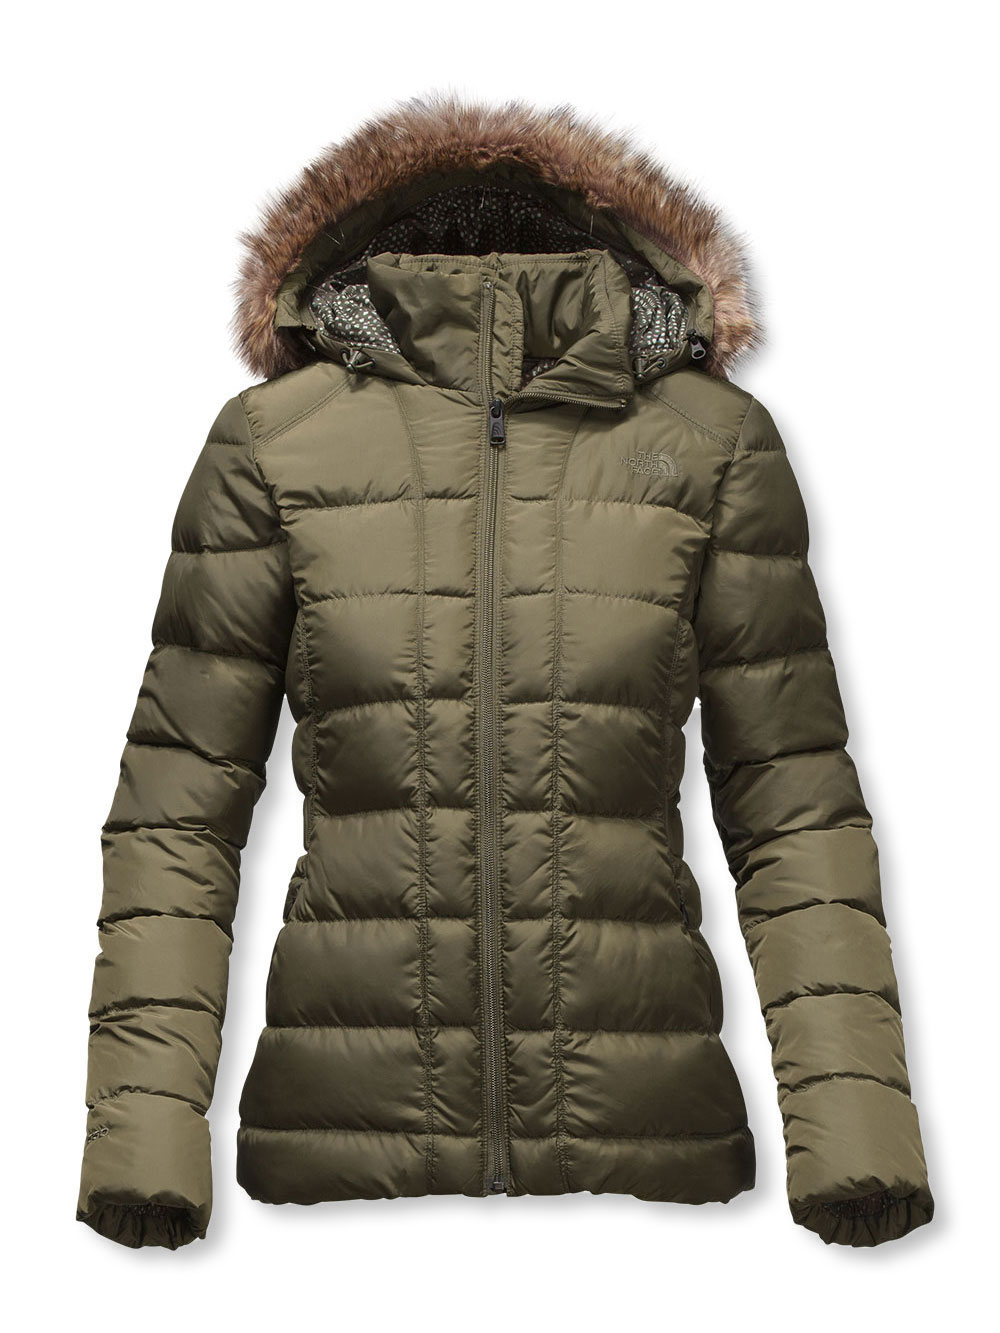 c47ae242b The North Face Women's Gotham Down Jacket (Sizes S – XL)